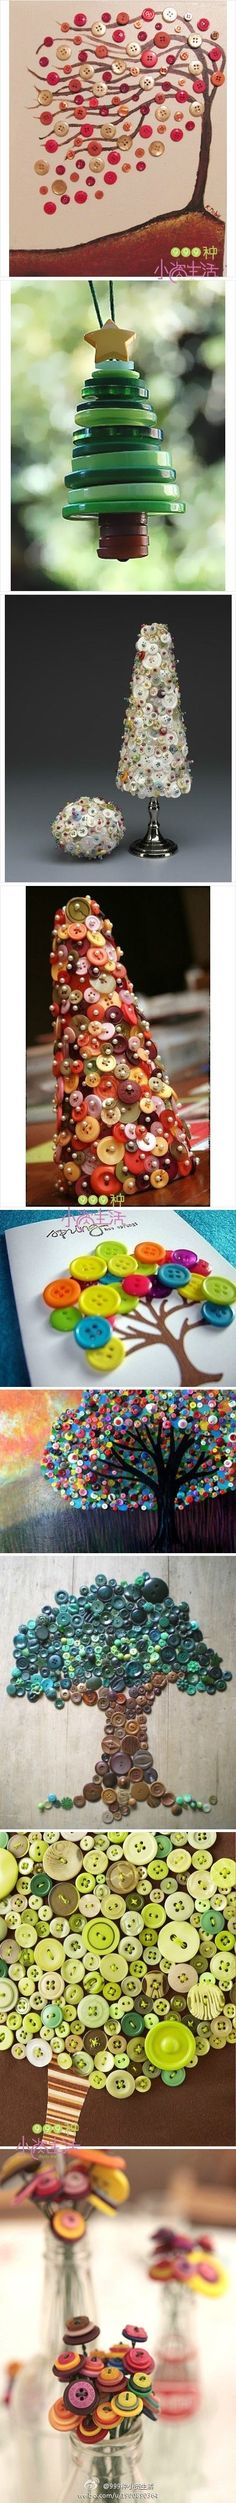 So many Button crafts! - Click image to find more DIY & Crafts Pinterest pins    Clever - could cost lotsa $$$ unless you're good at  garage sales and flea markets :)